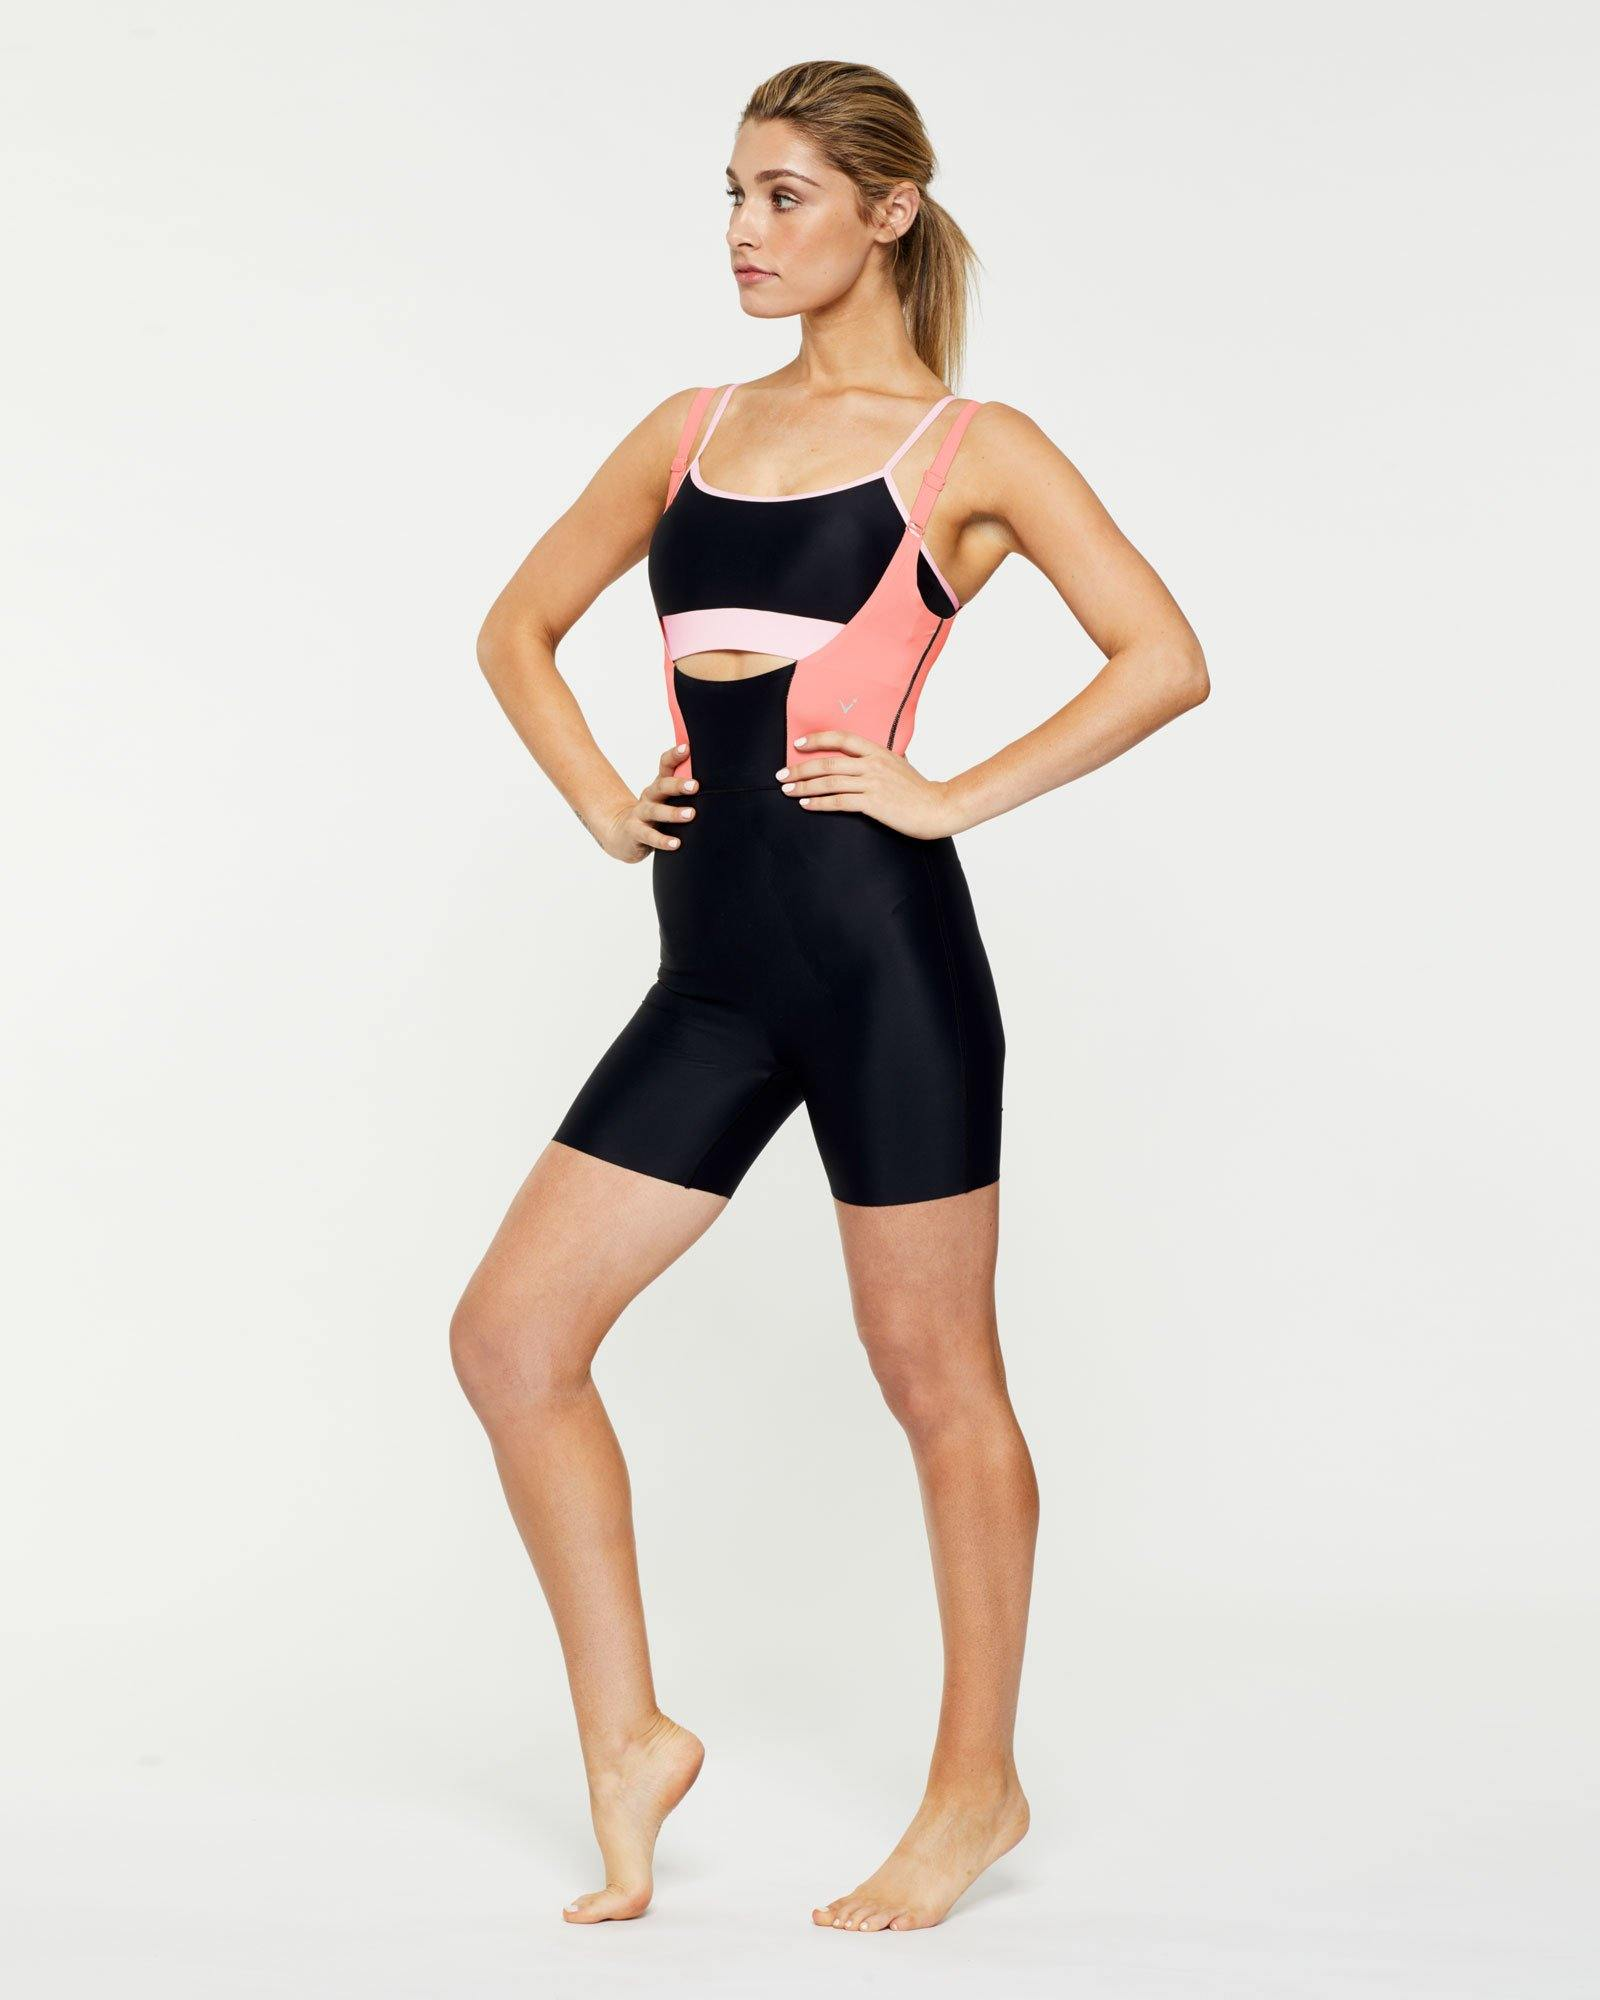 Warrior RECTUS SHORT BODYSUIT worn low front over Infraspinatus active top and high back, side view